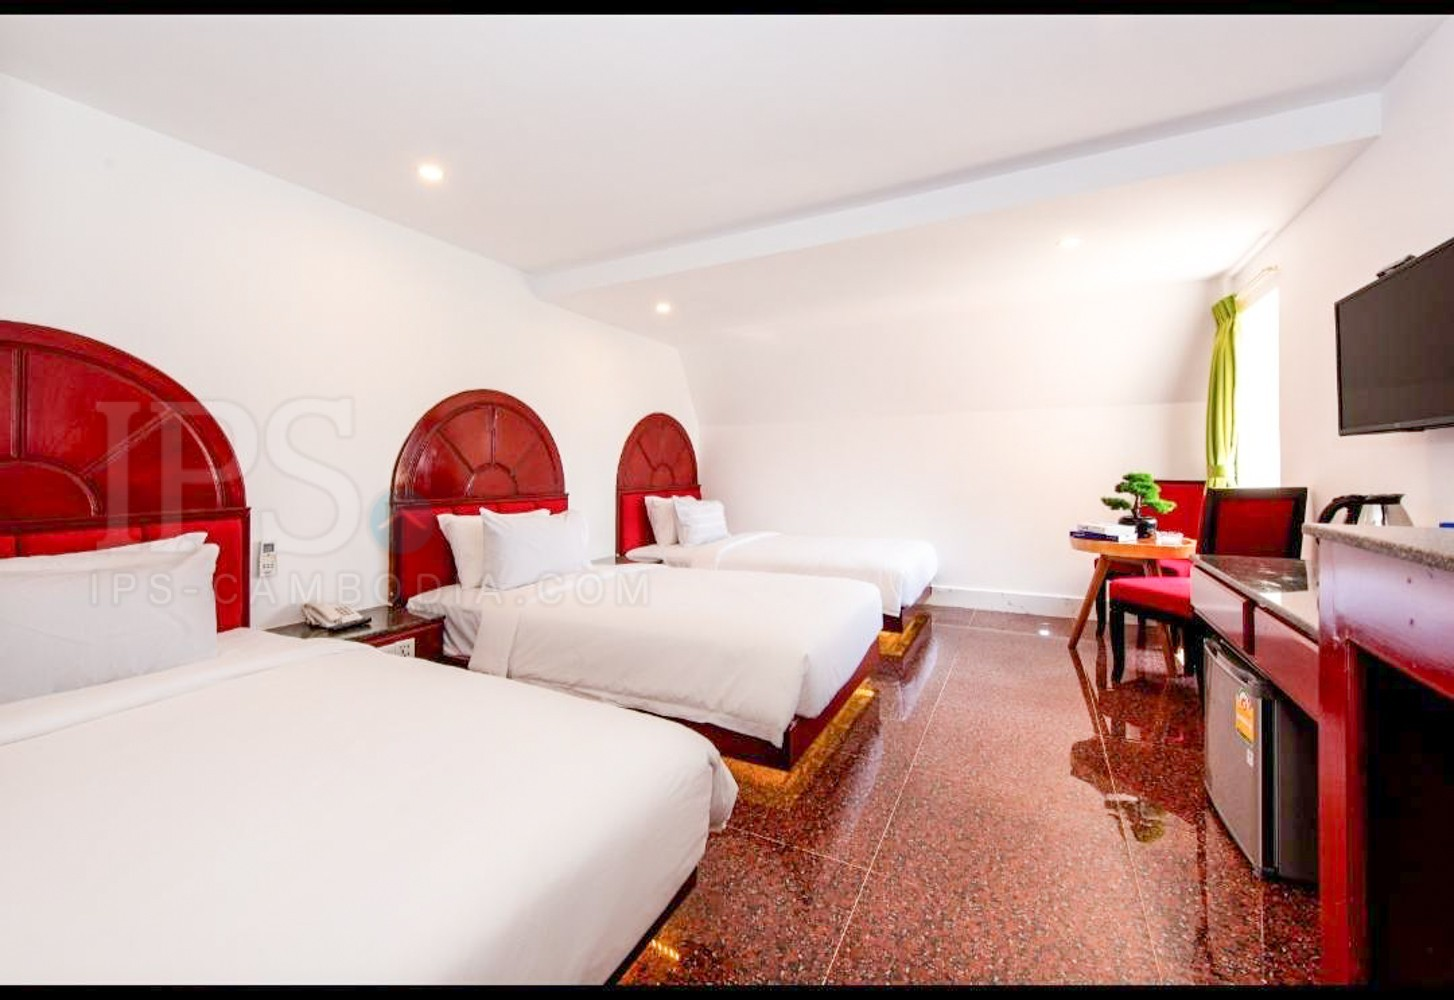 15 Room Guesthouse For Rent - Svay Dangkum, Siem Reap